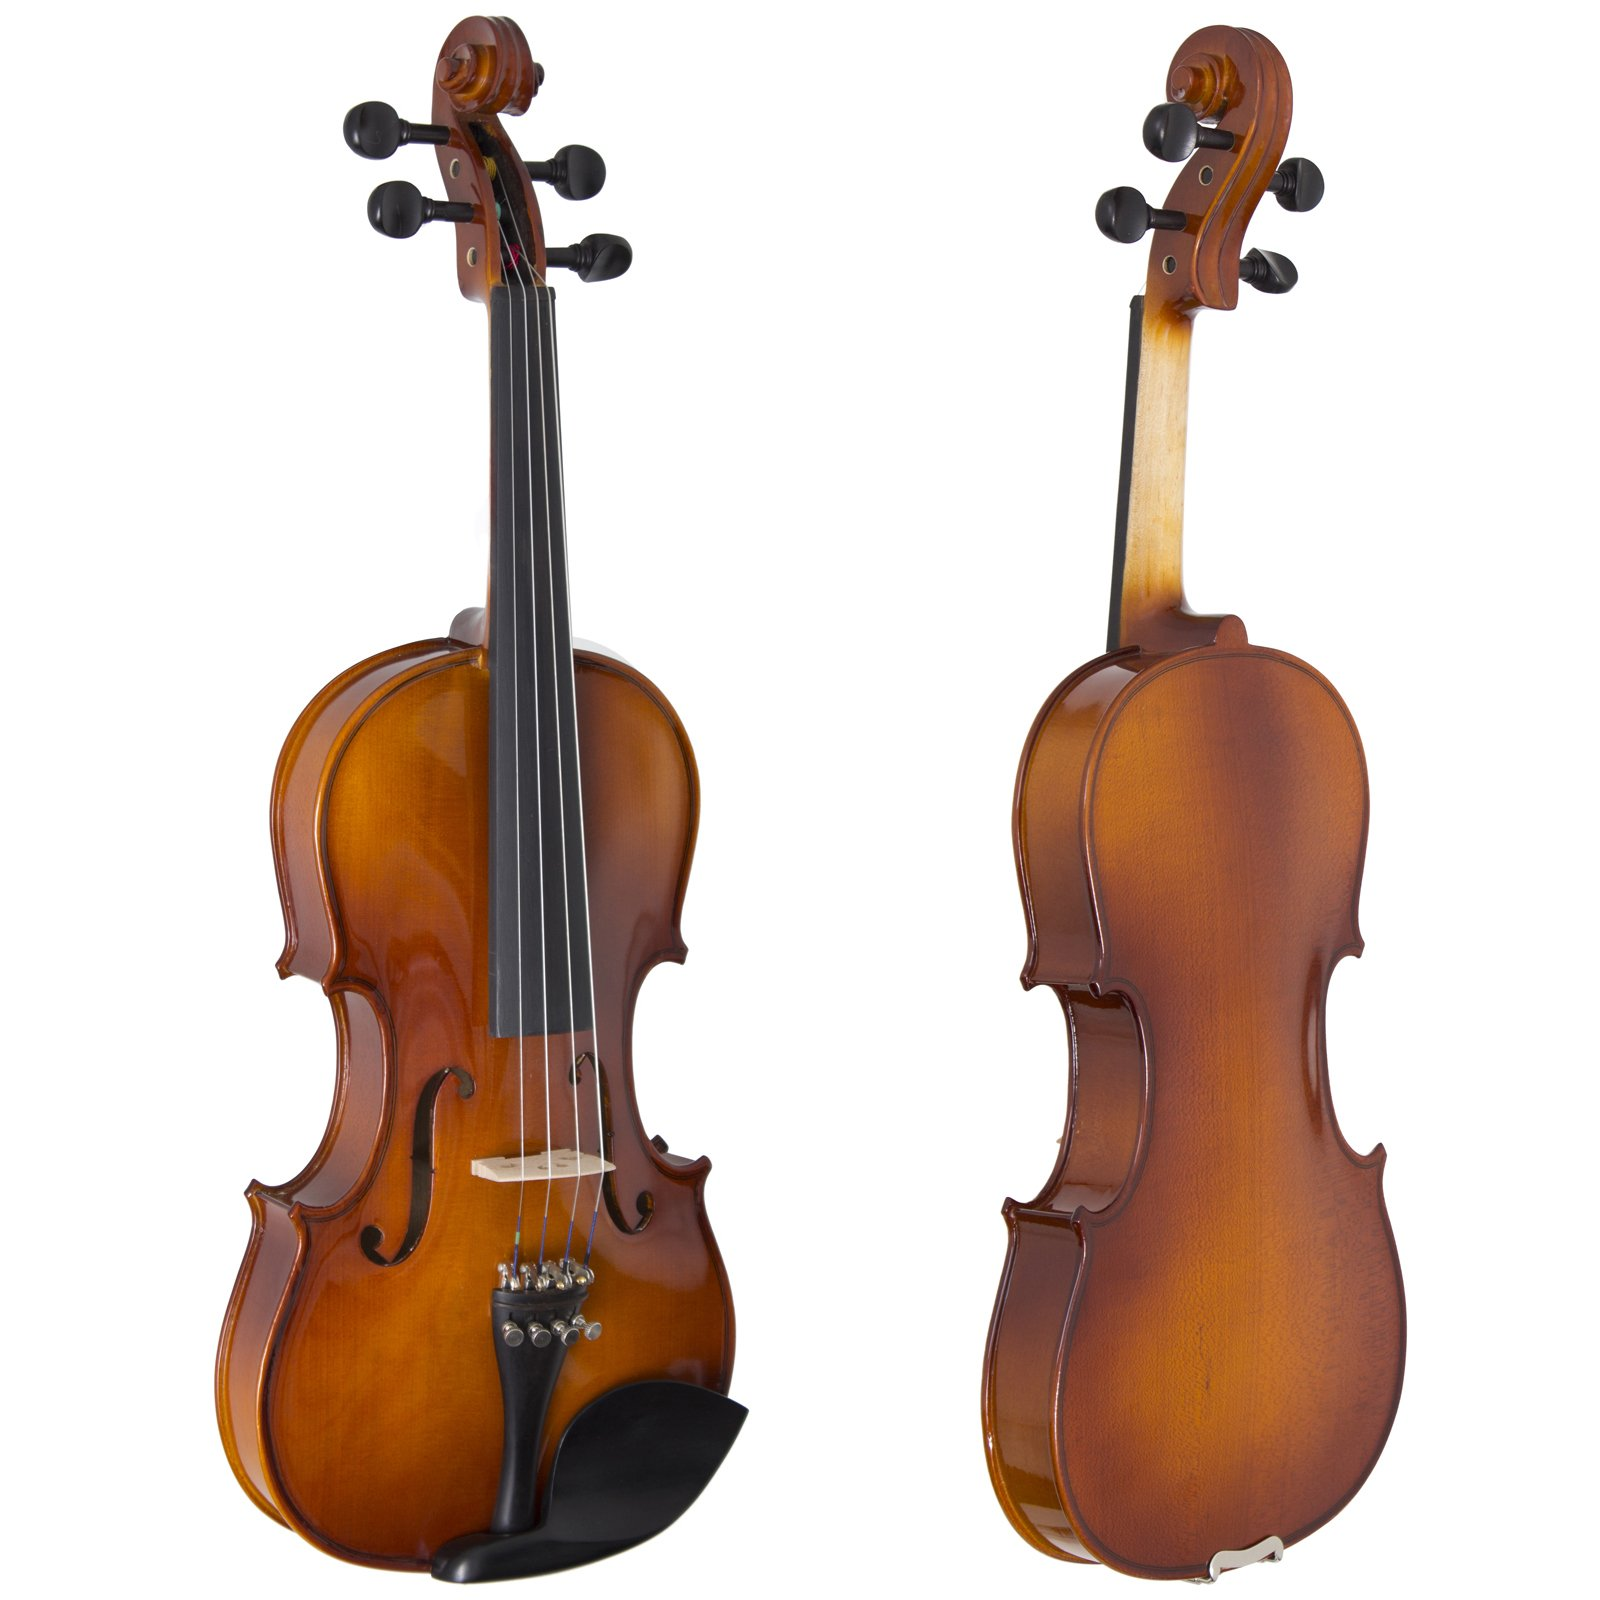 Cecilio CVN-320L Solidwood Ebony Fitted Left-Handed Violin with D'Addario Prelude Strings, Size 4/4 (Full Size) by Cecilio (Image #2)